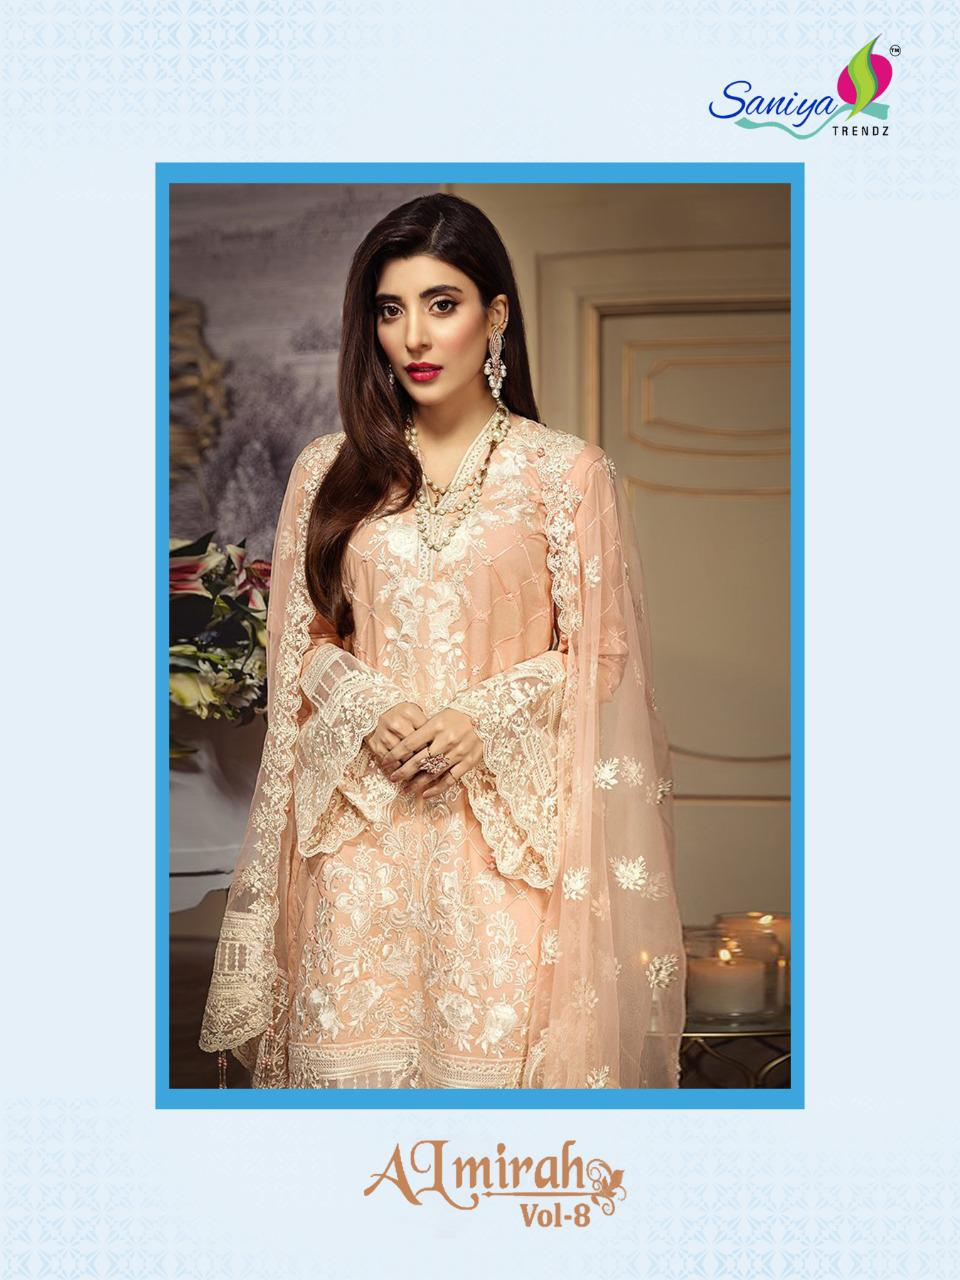 Saniya Trendz Almirah Vol 8 Designer Heavy Self Embroidery With Cotton Pakistani Replica Suits In Best Wholesale Rate